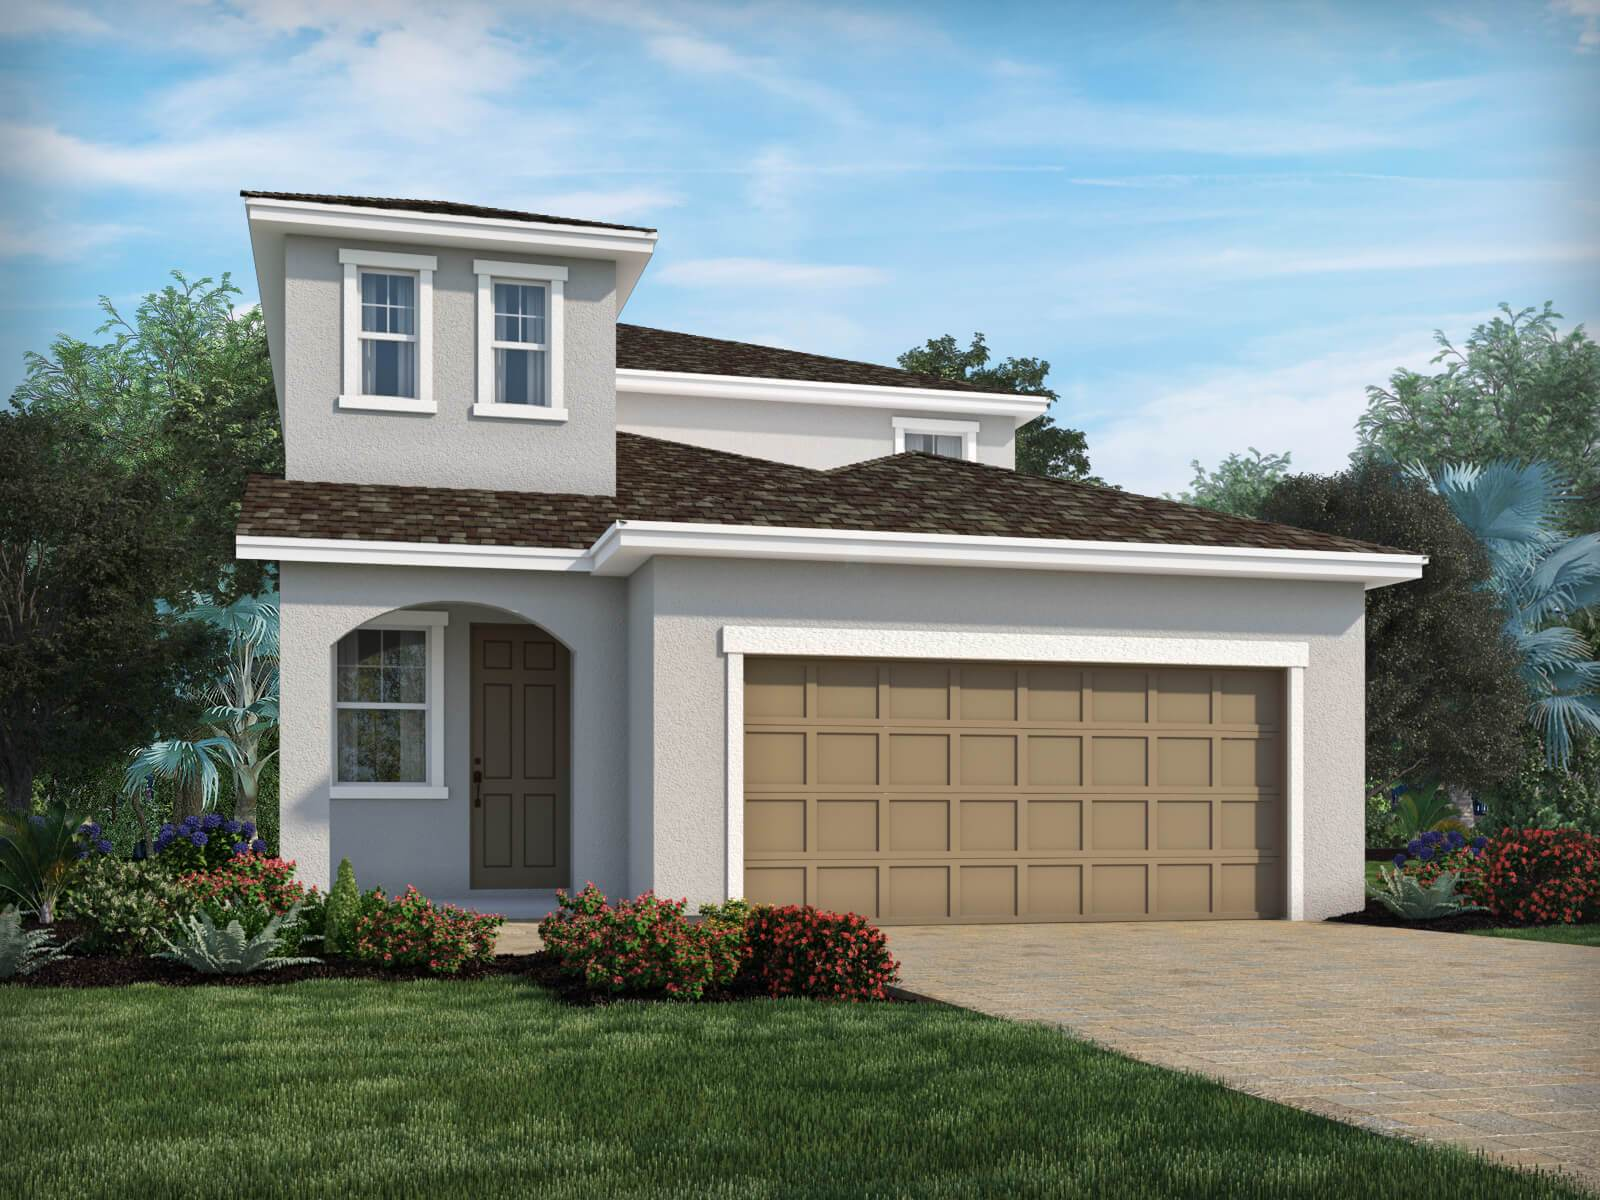 Eave's Bend at Artisan Lakes in Palmetto, FL, now available for showing by Anthony Santiago